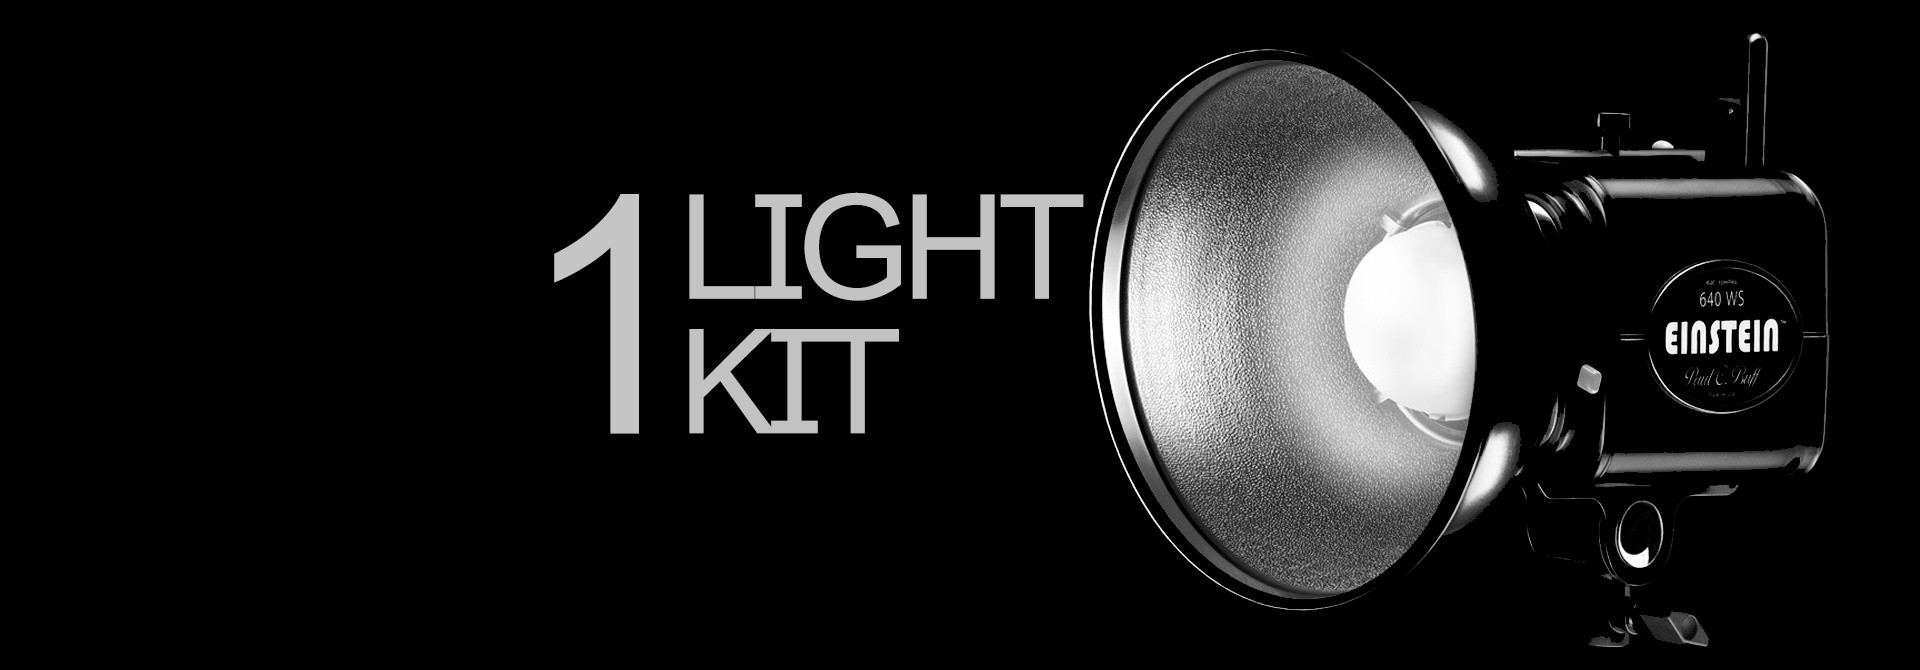 ONE LIGHT KIT | WITH PAUL C. BUFF